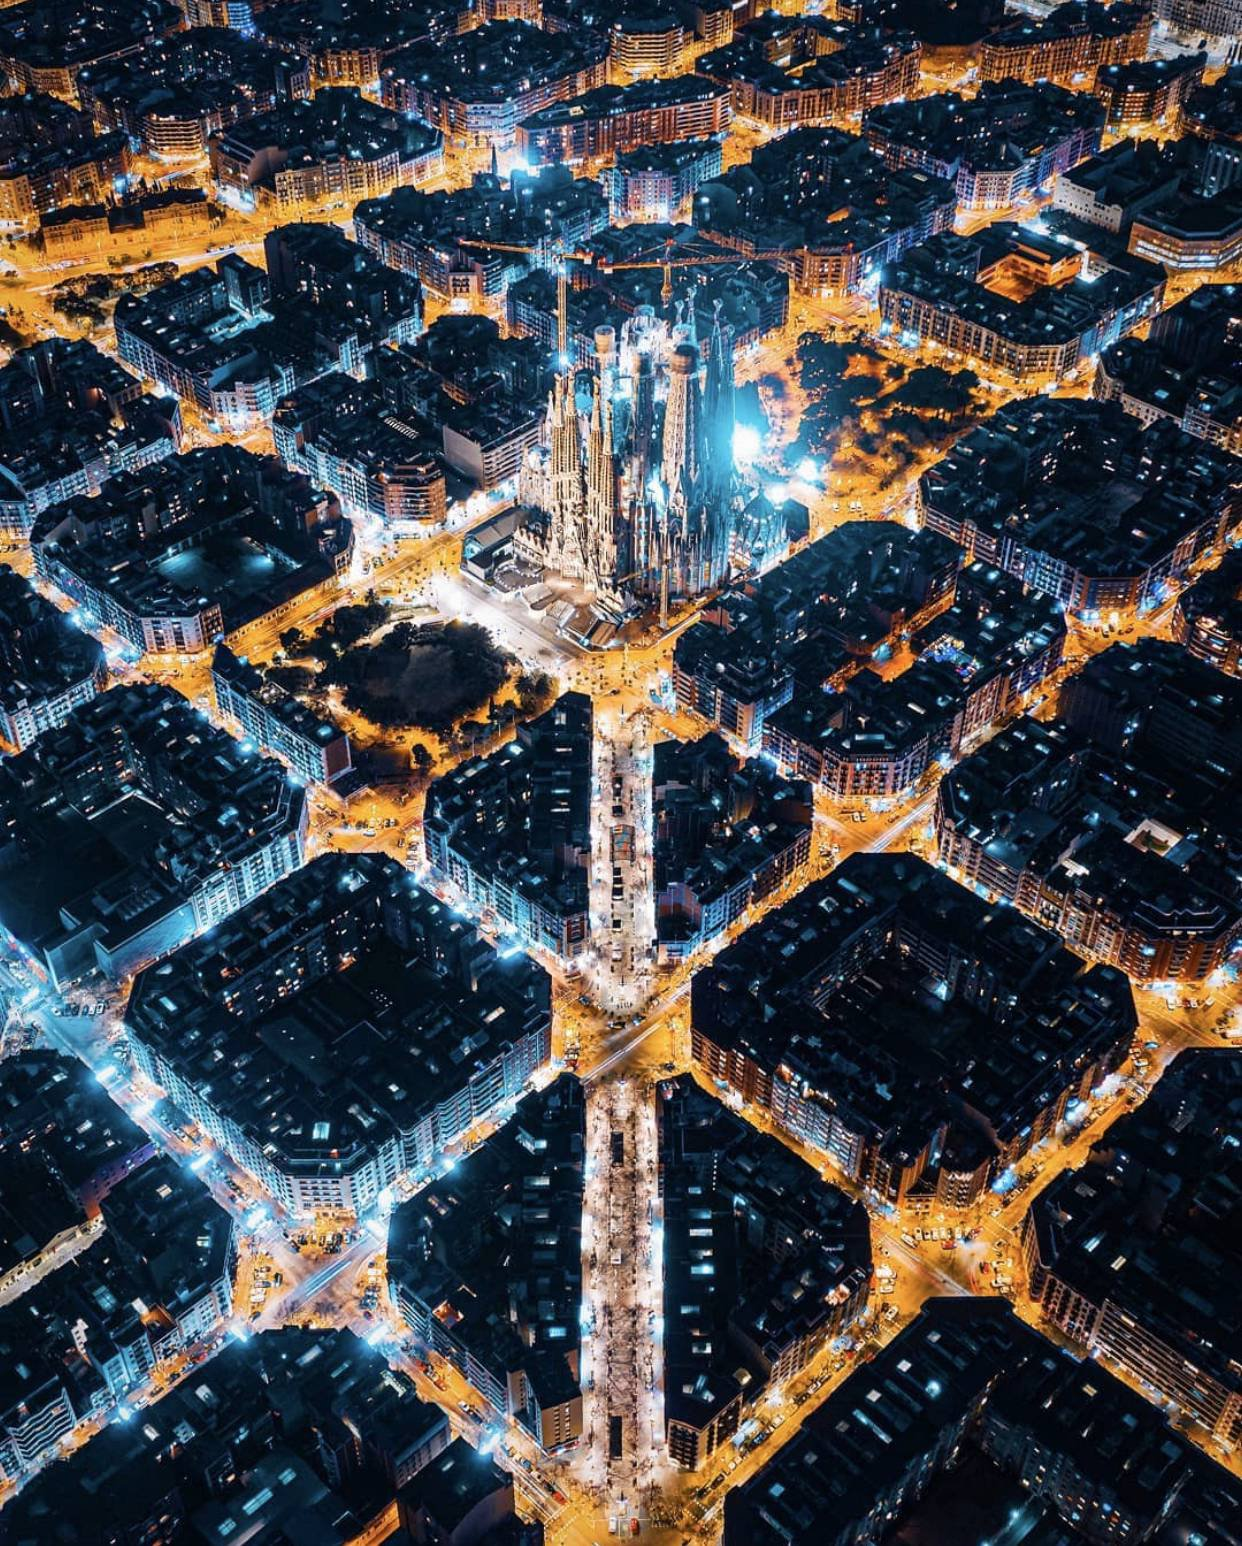 Night shot of Barcelona, Spain